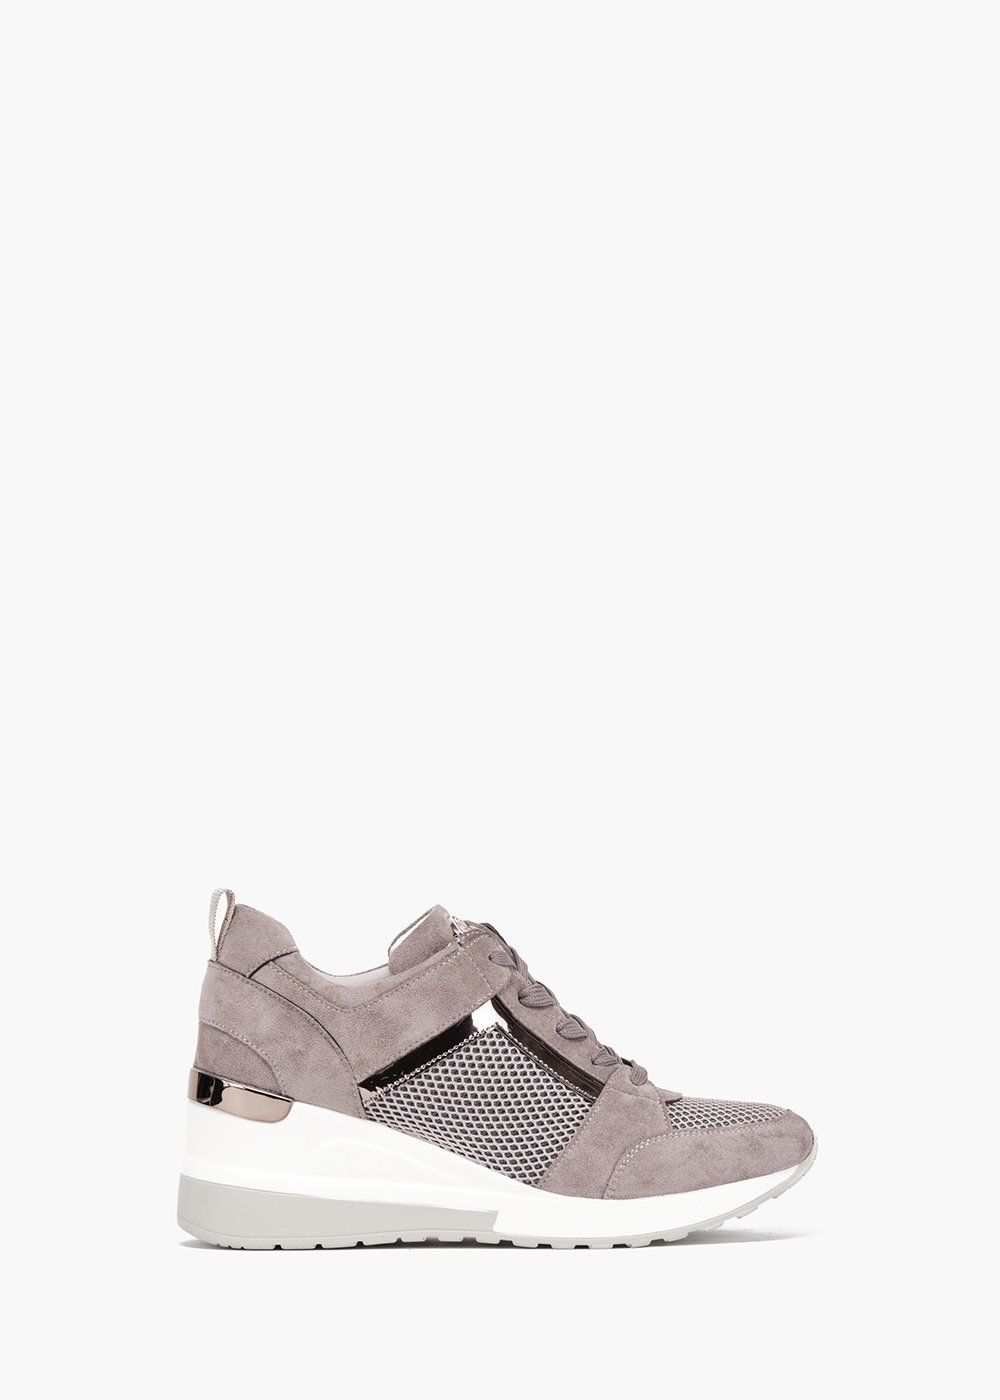 Gym shoes Steal in eco suede with net detail - Grey - Woman